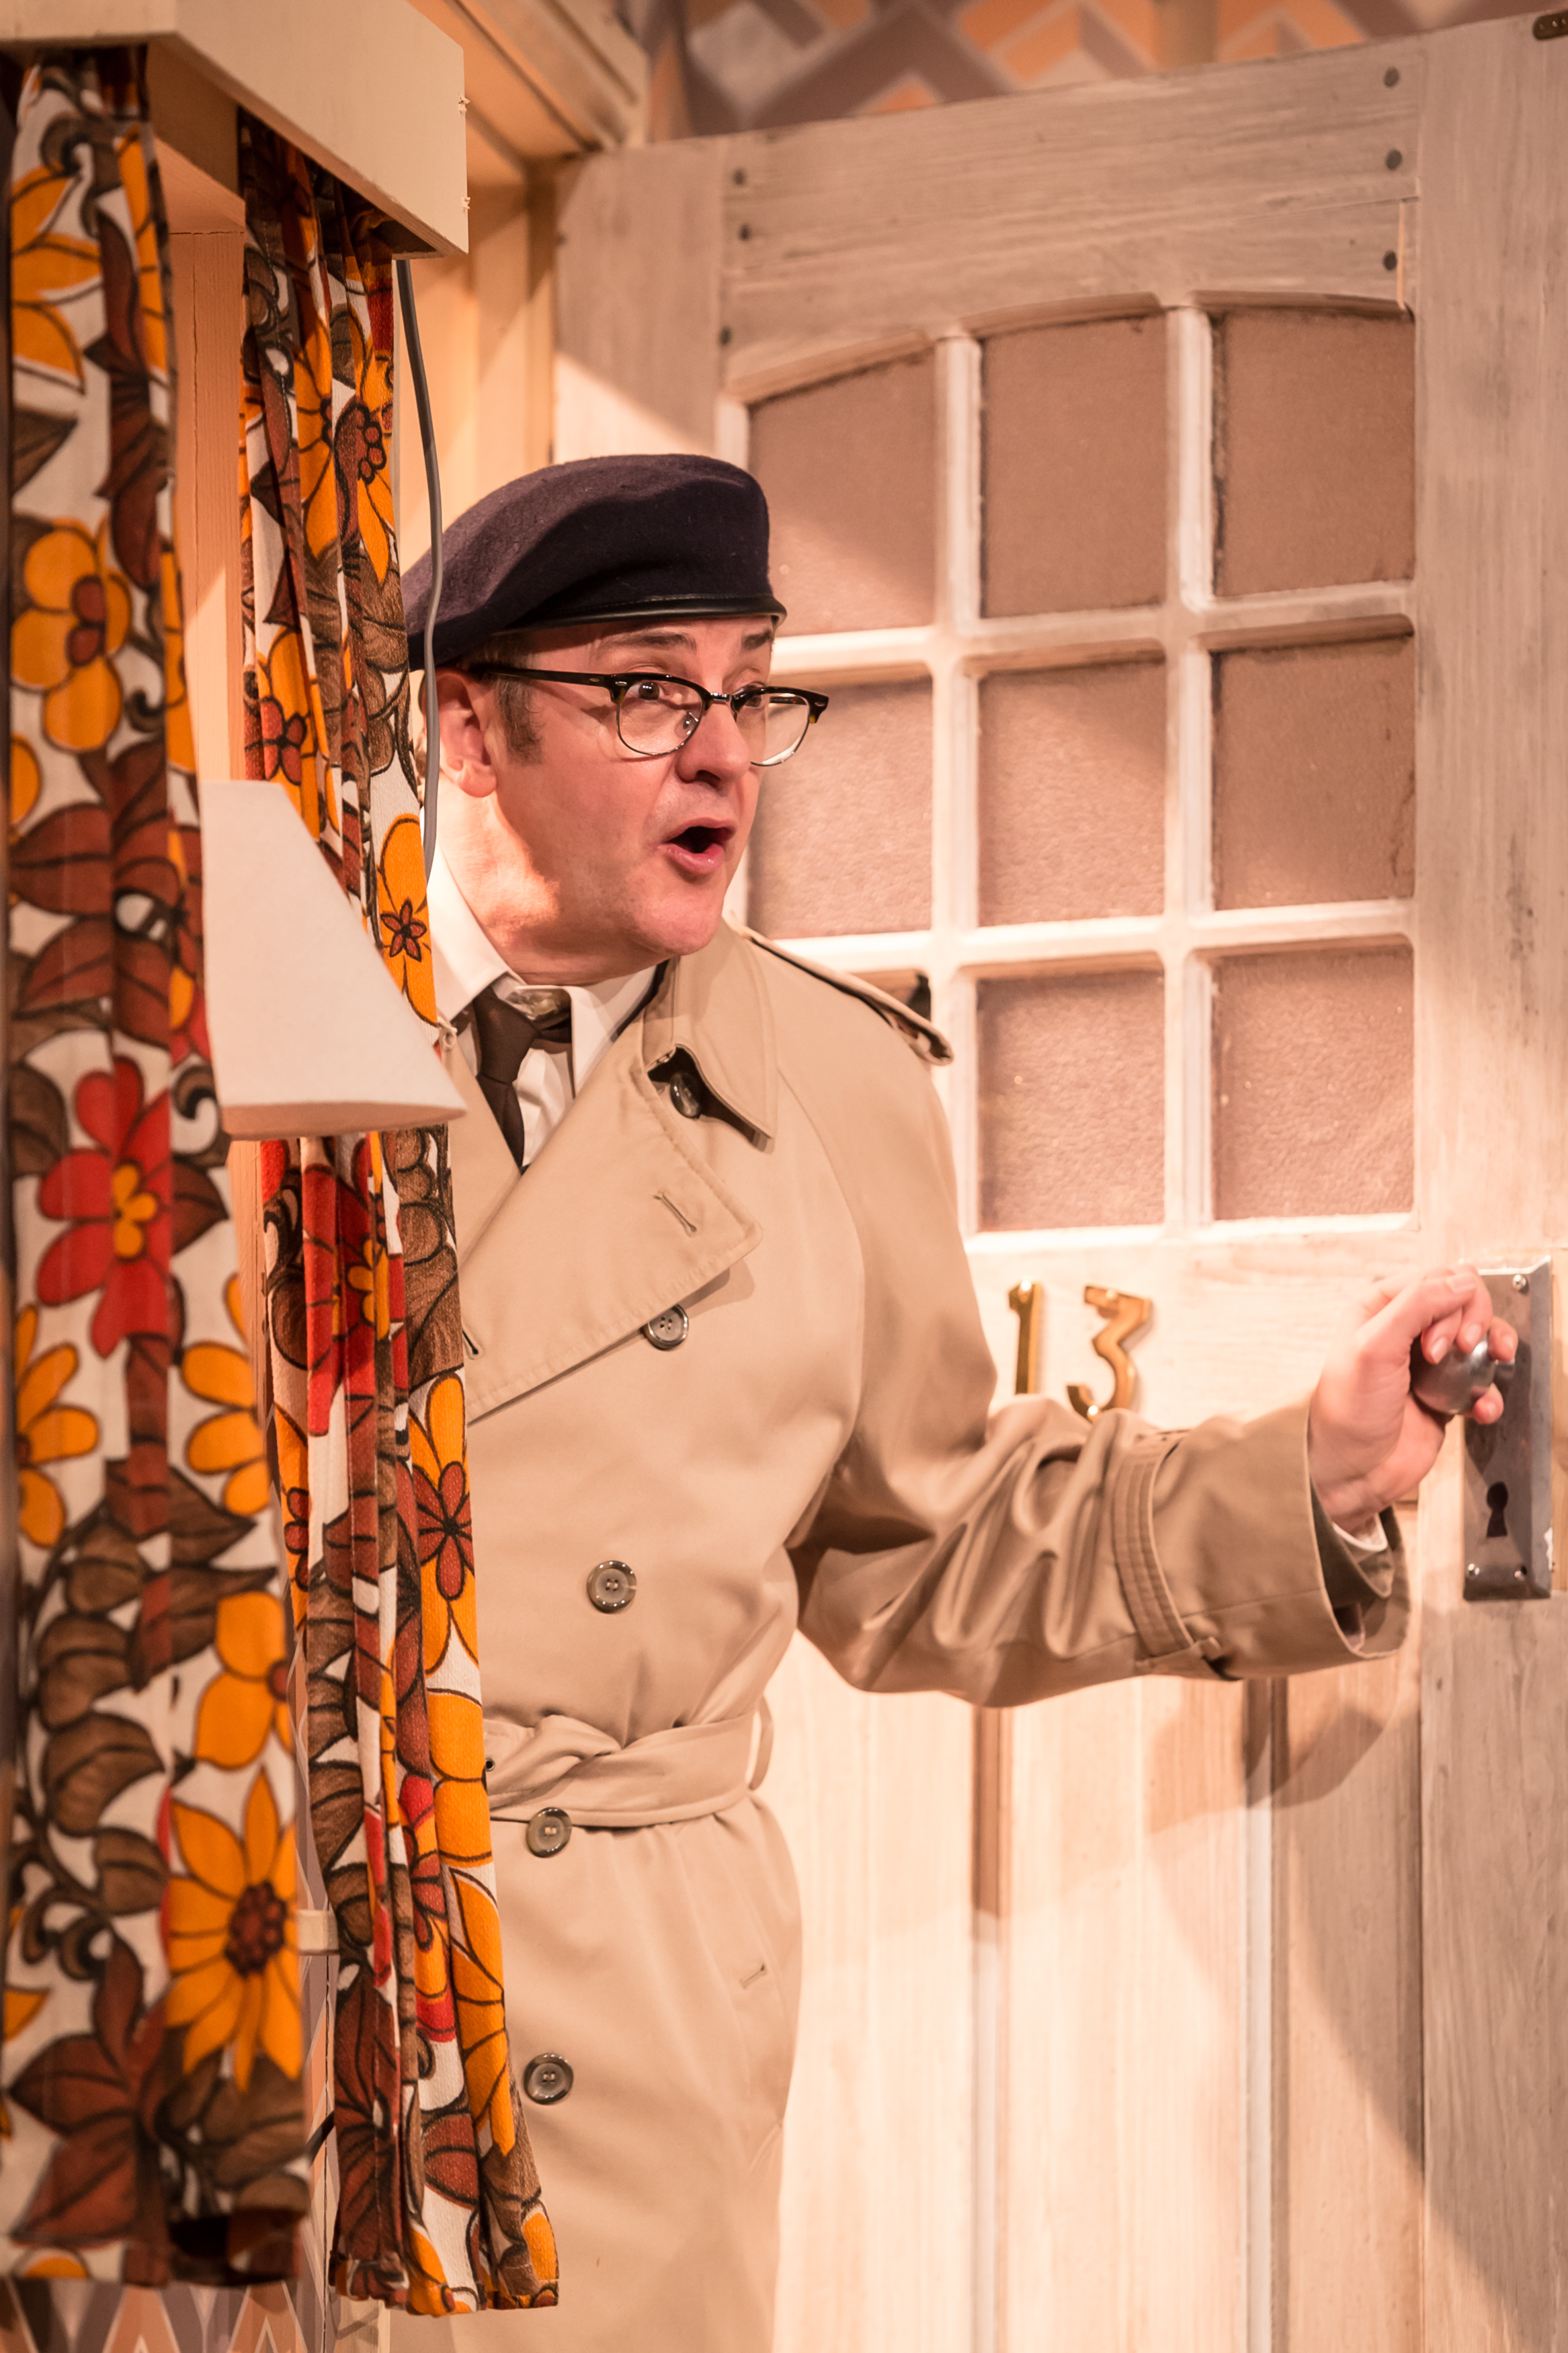 Comedian Joe Pasquale to star as Frank Spencer in stage version of Some Mothers Do 'Ave 'Em